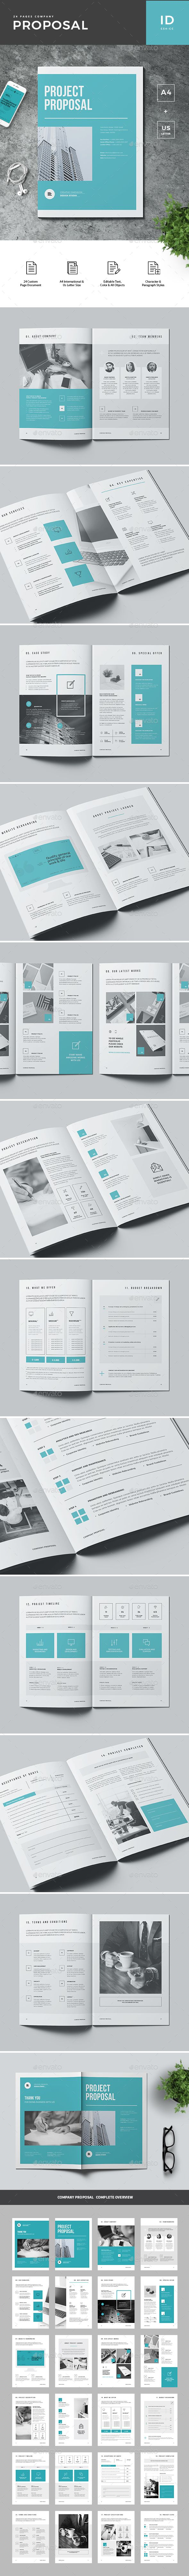 proposal brochure template indesign indd 24 custom pages a4 international us letter size layered document cmy proposal invoice templates